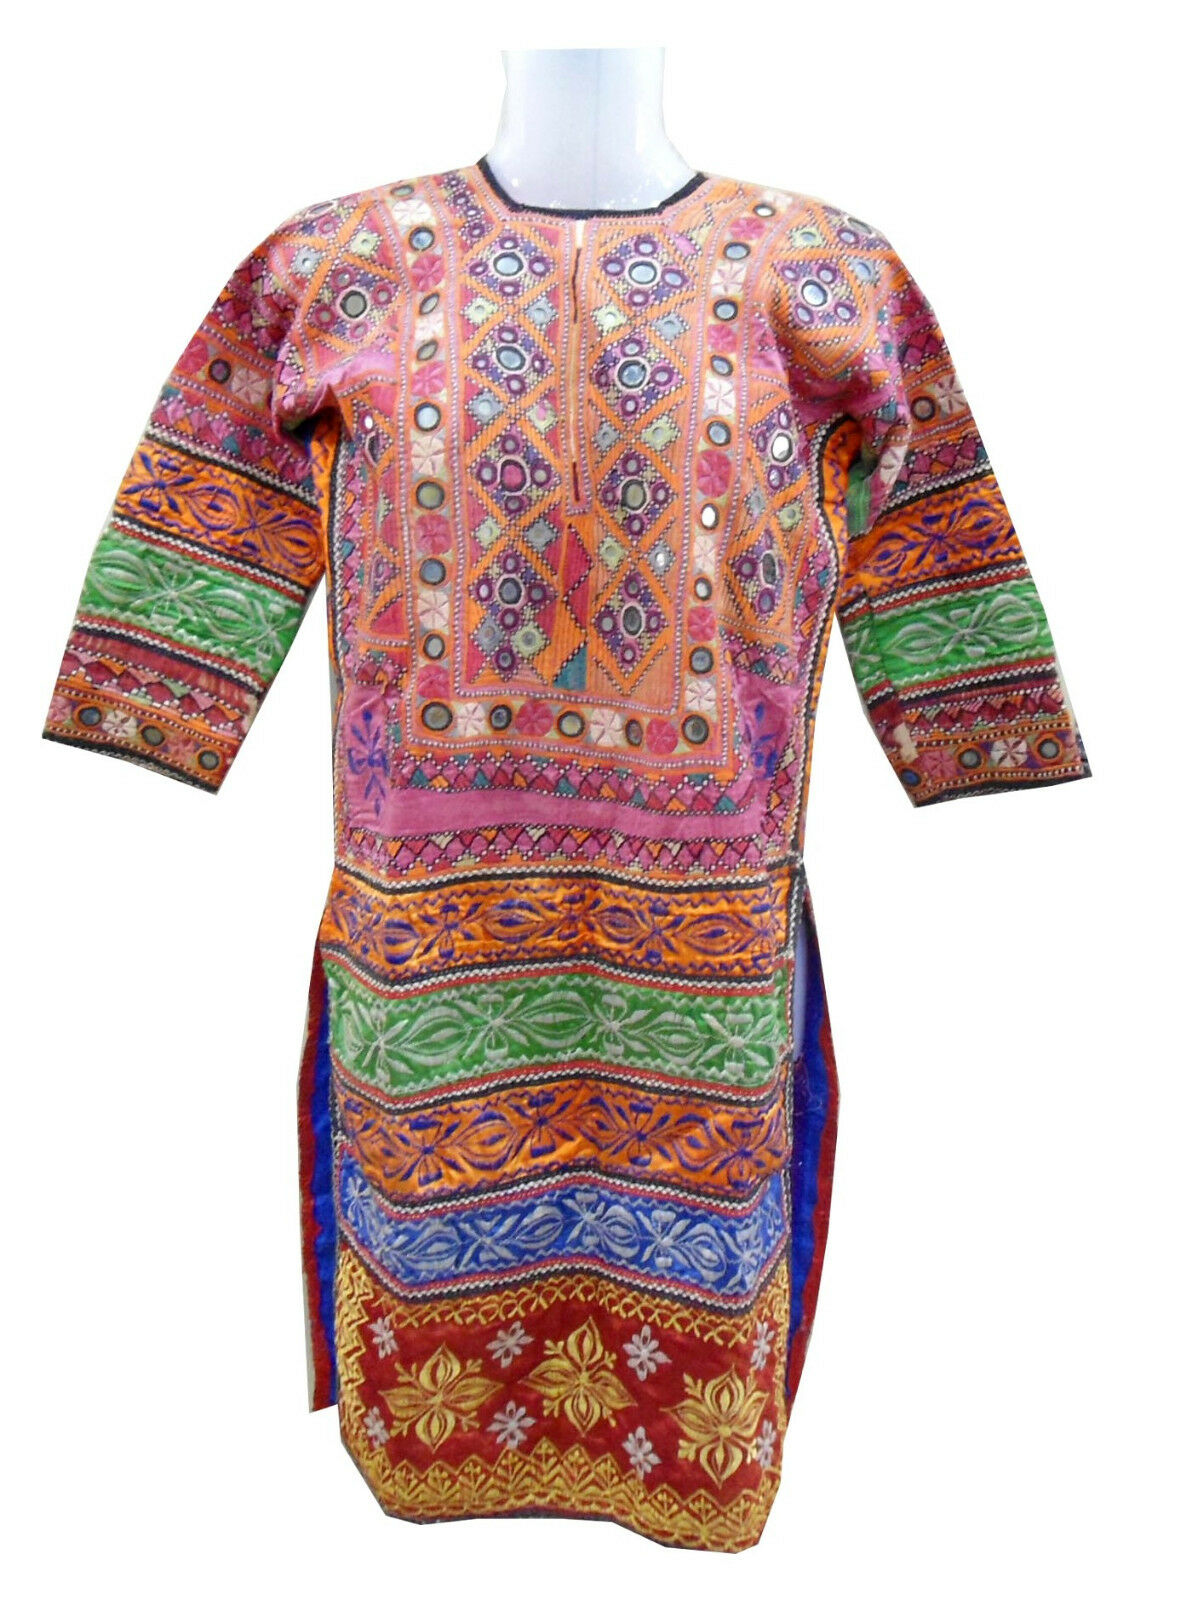 Vintage Embroidery Textile Kurta With Mirror & Jari Work Tunic From Indian Tribe